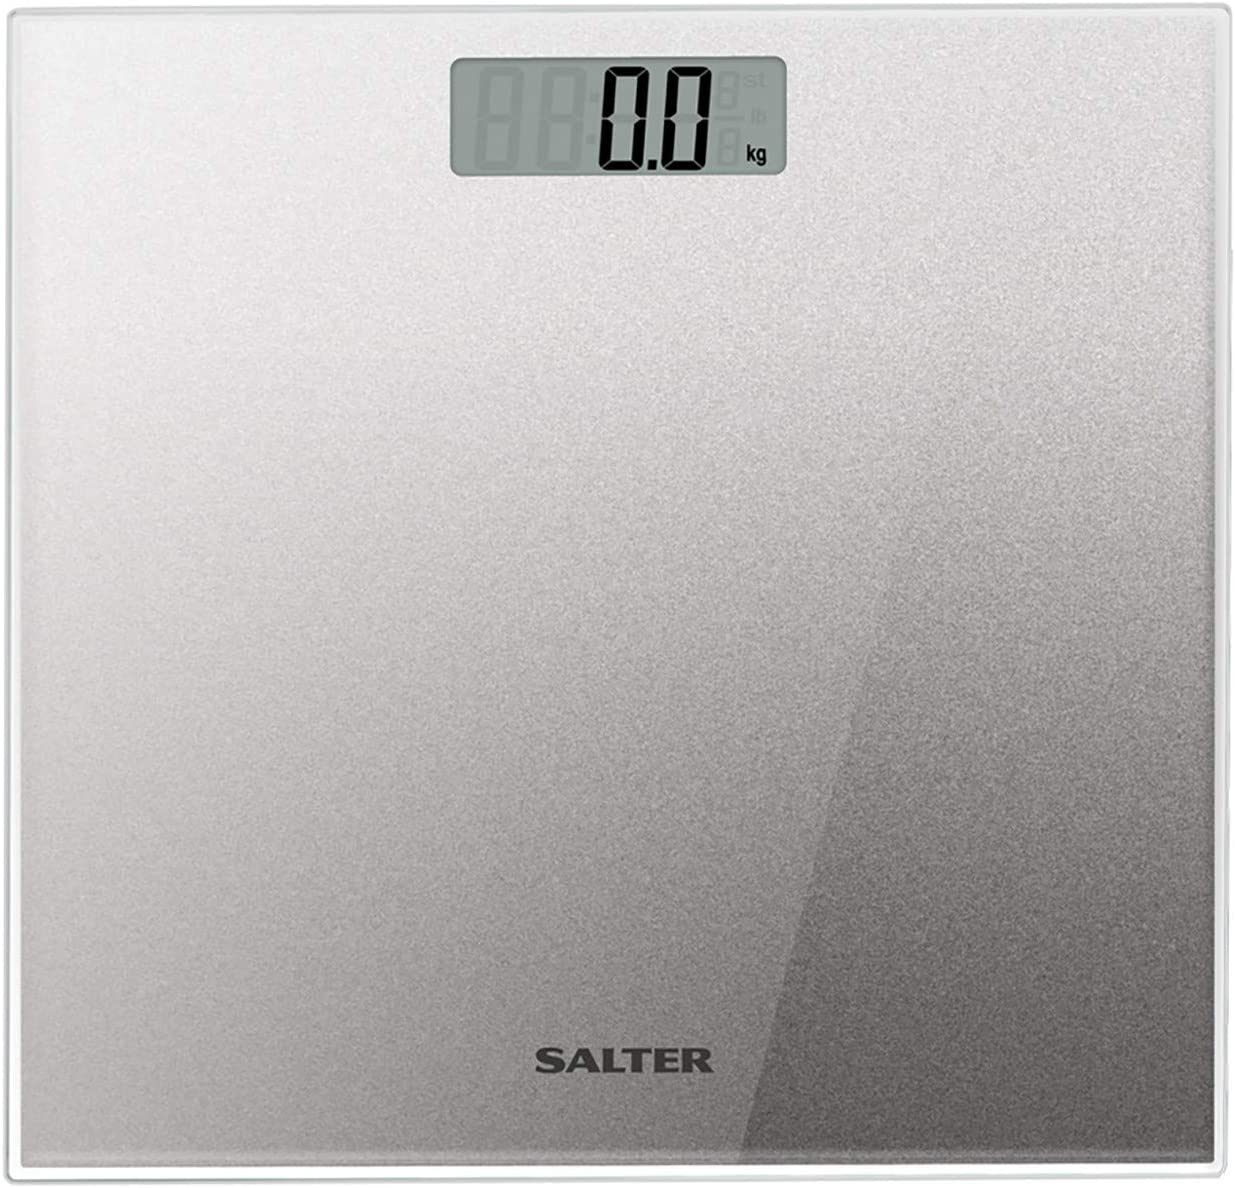 Salter Glitter Bathroom Scales – Supersize Digital Display 52% OFF £11.99 @ Amazon